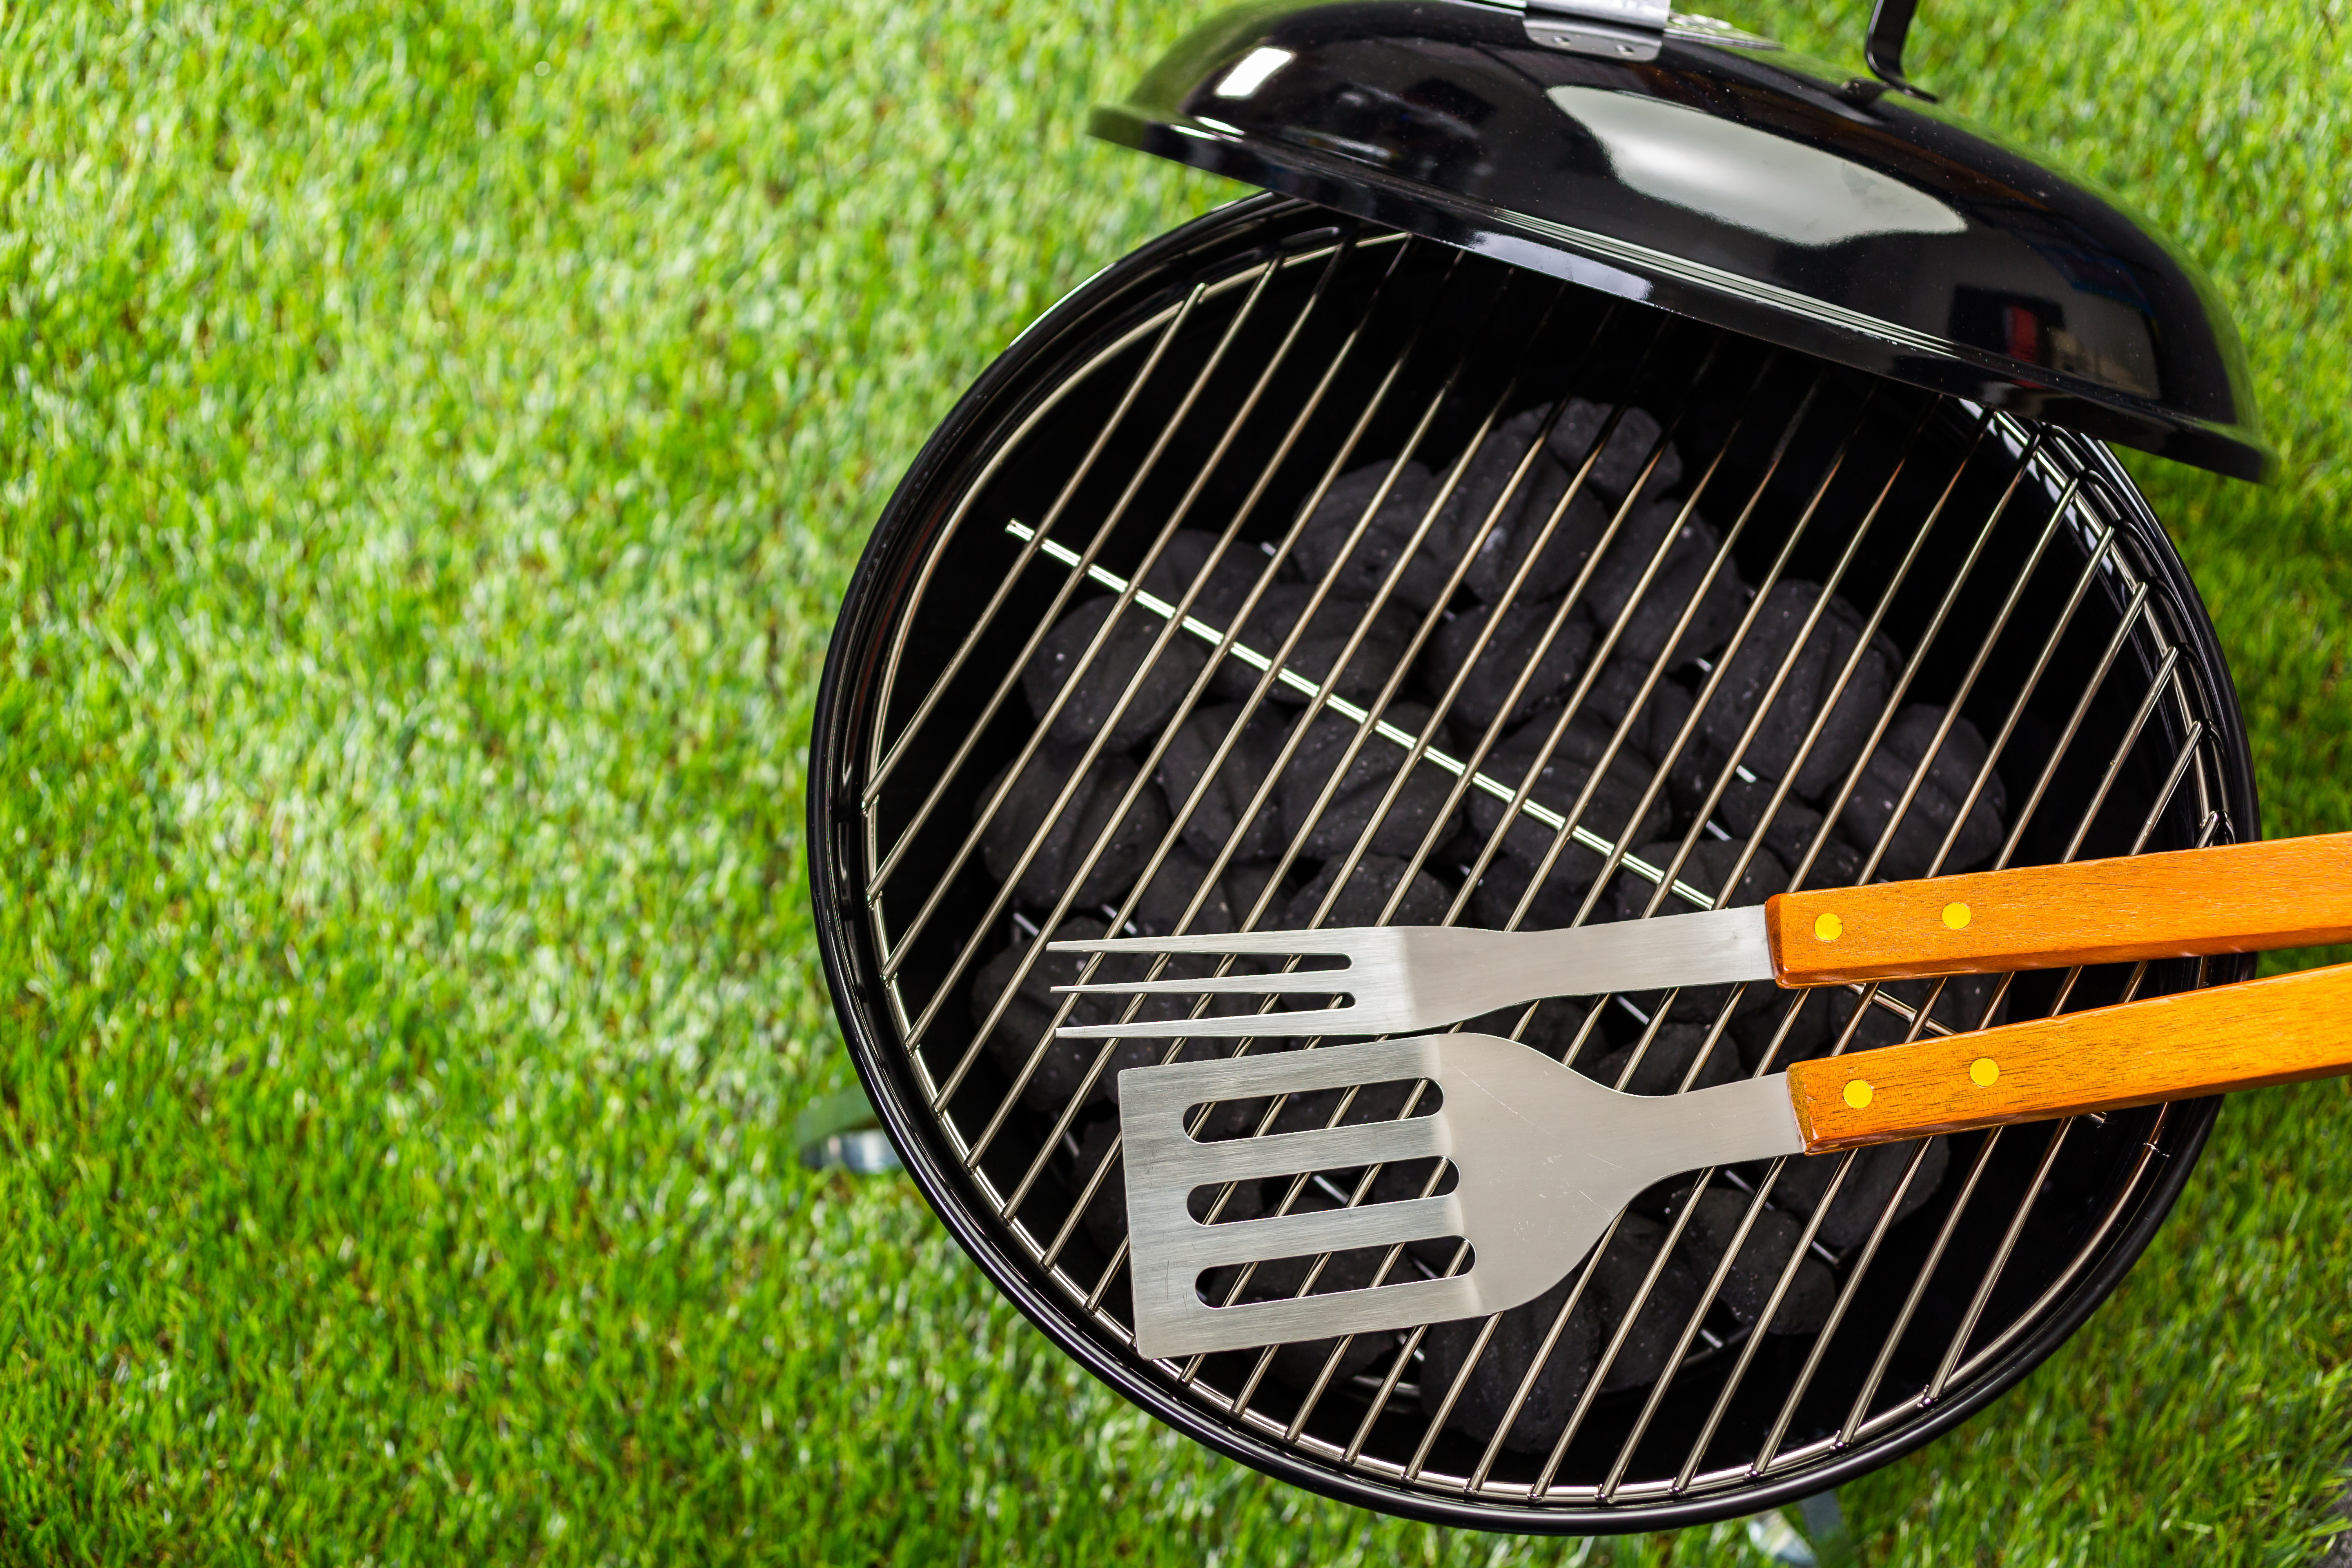 Grilling Safety: The Do's and Don'ts of Cooking Outside